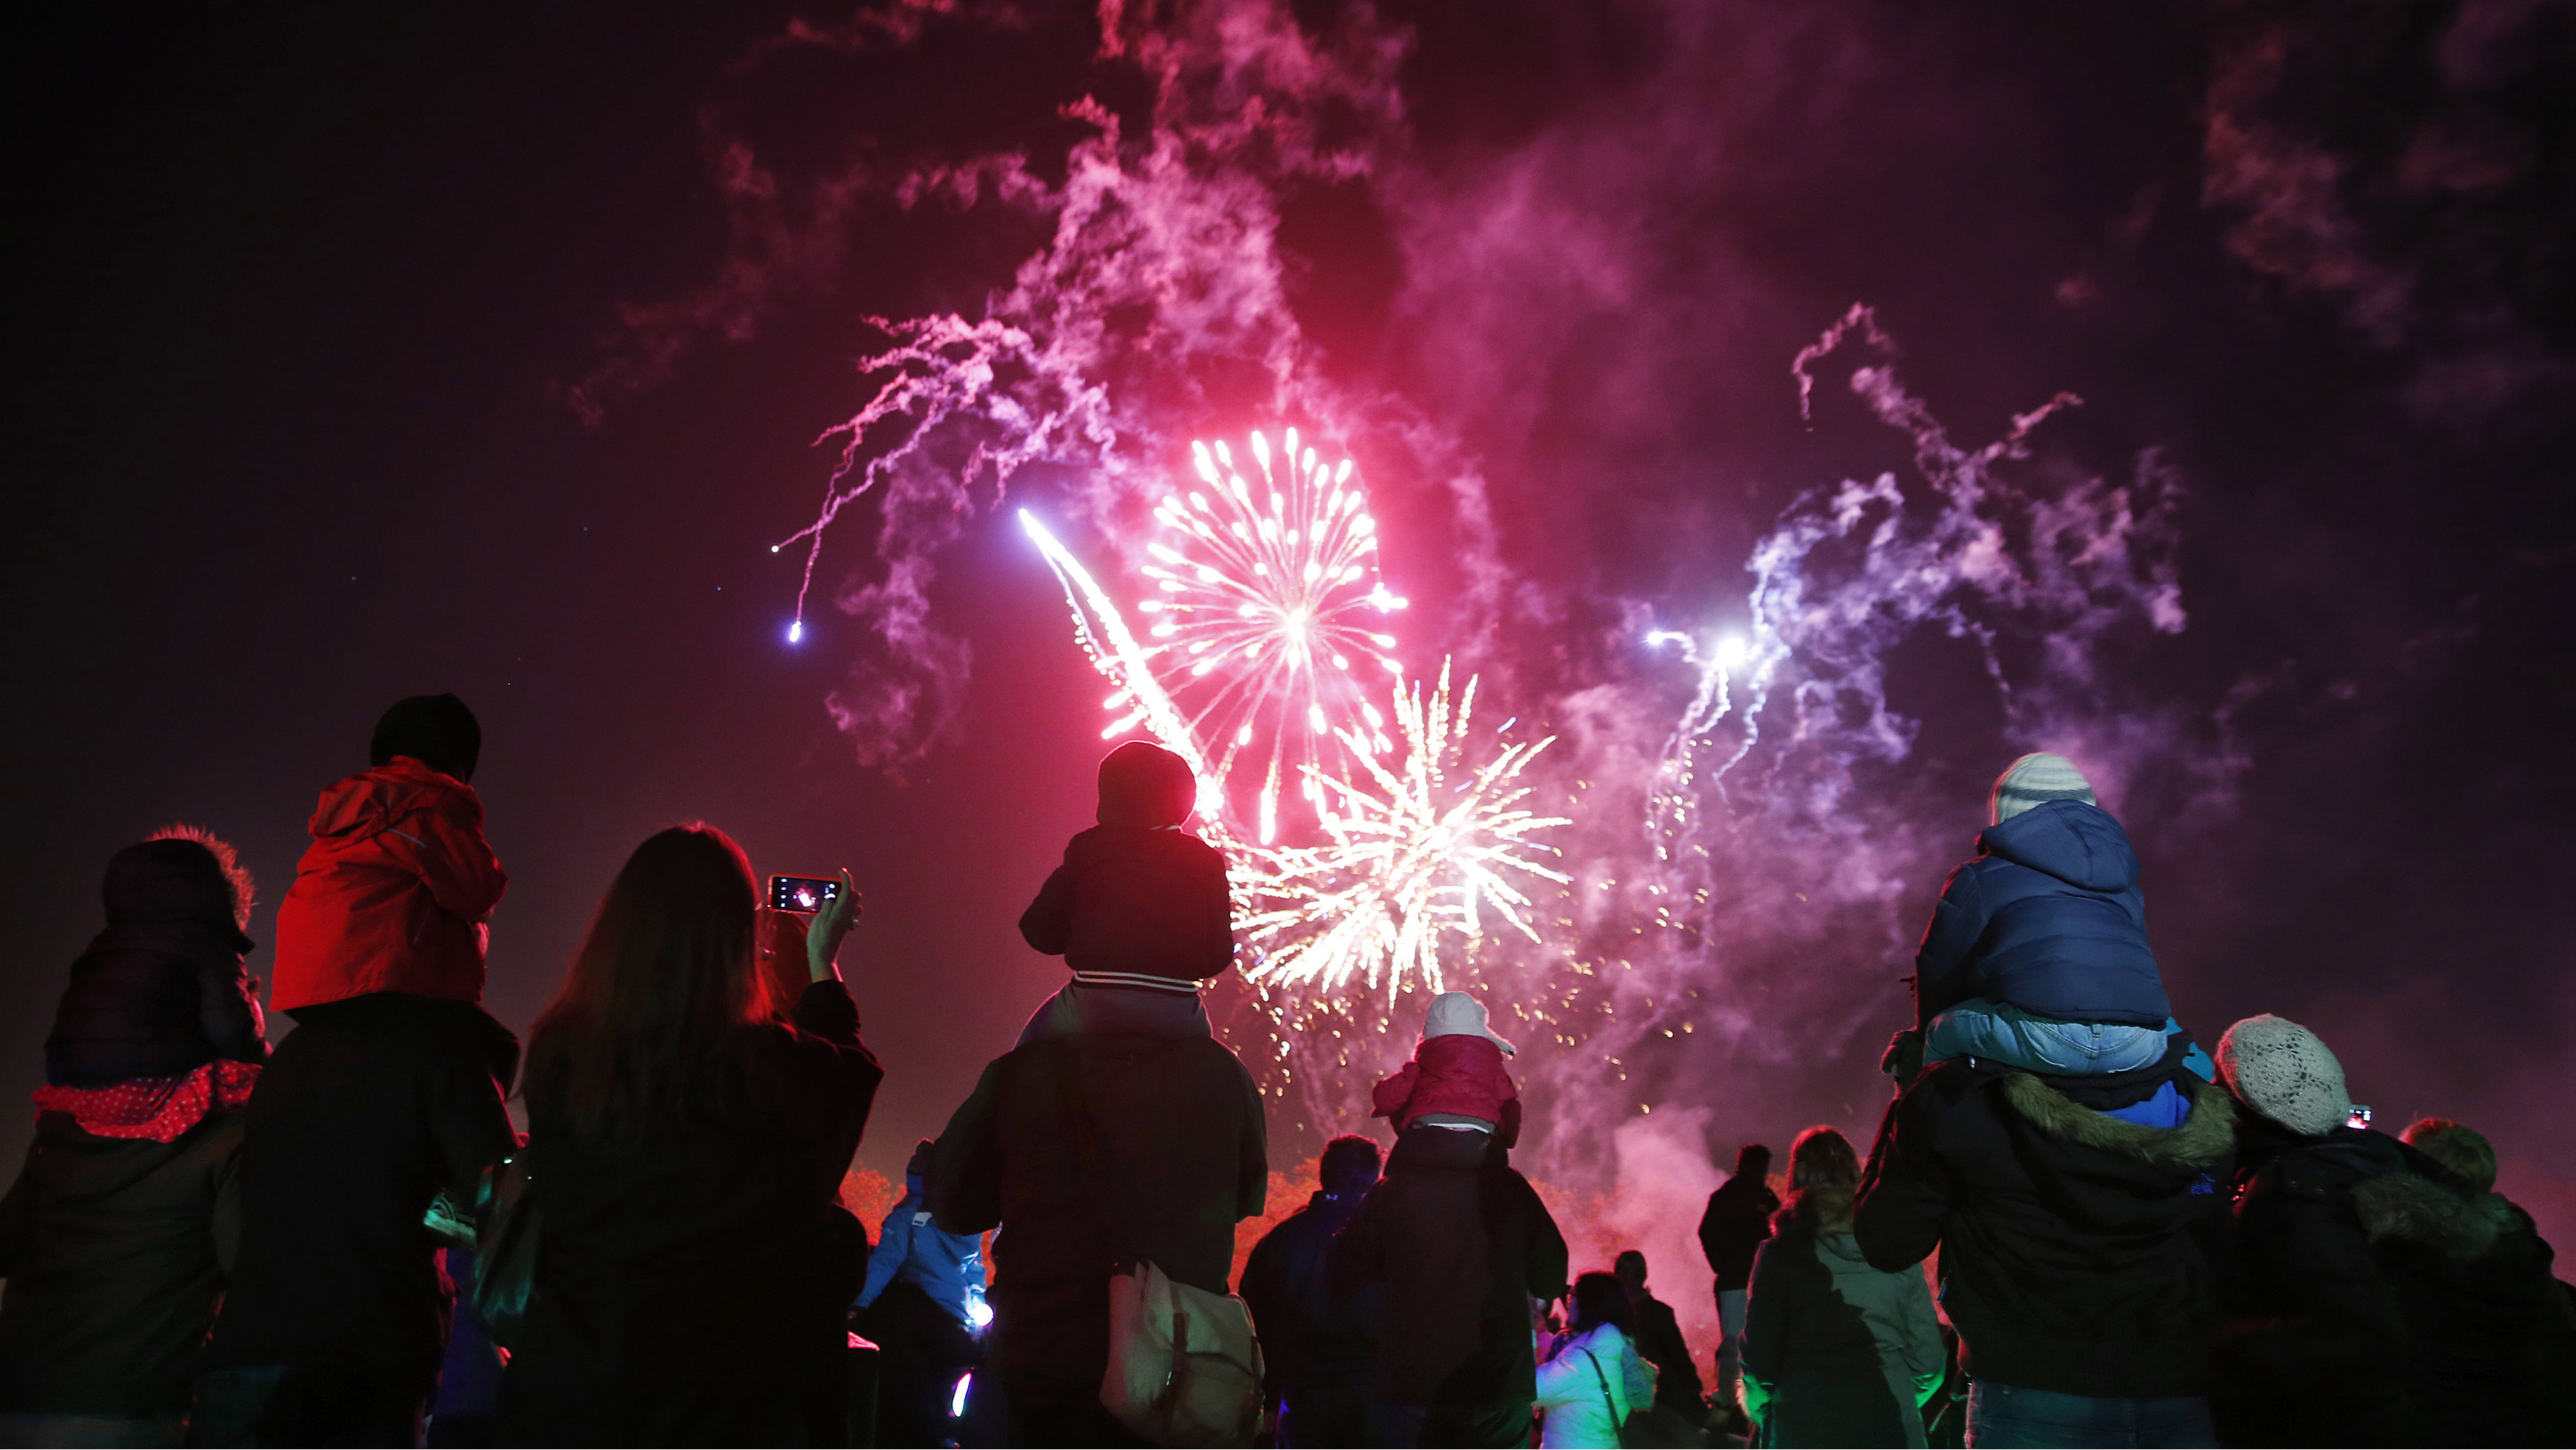 """Children sit on their parents' shoulders as they watch a bonfire night firework display at Roundwood Park in northwest London November 5, 2014. The fireworks display is one of many across the country which marks the uncovering of Guy Fawkes' """"Gunpowder Plot"""" to blow up the Houses of Parliament in 1605."""